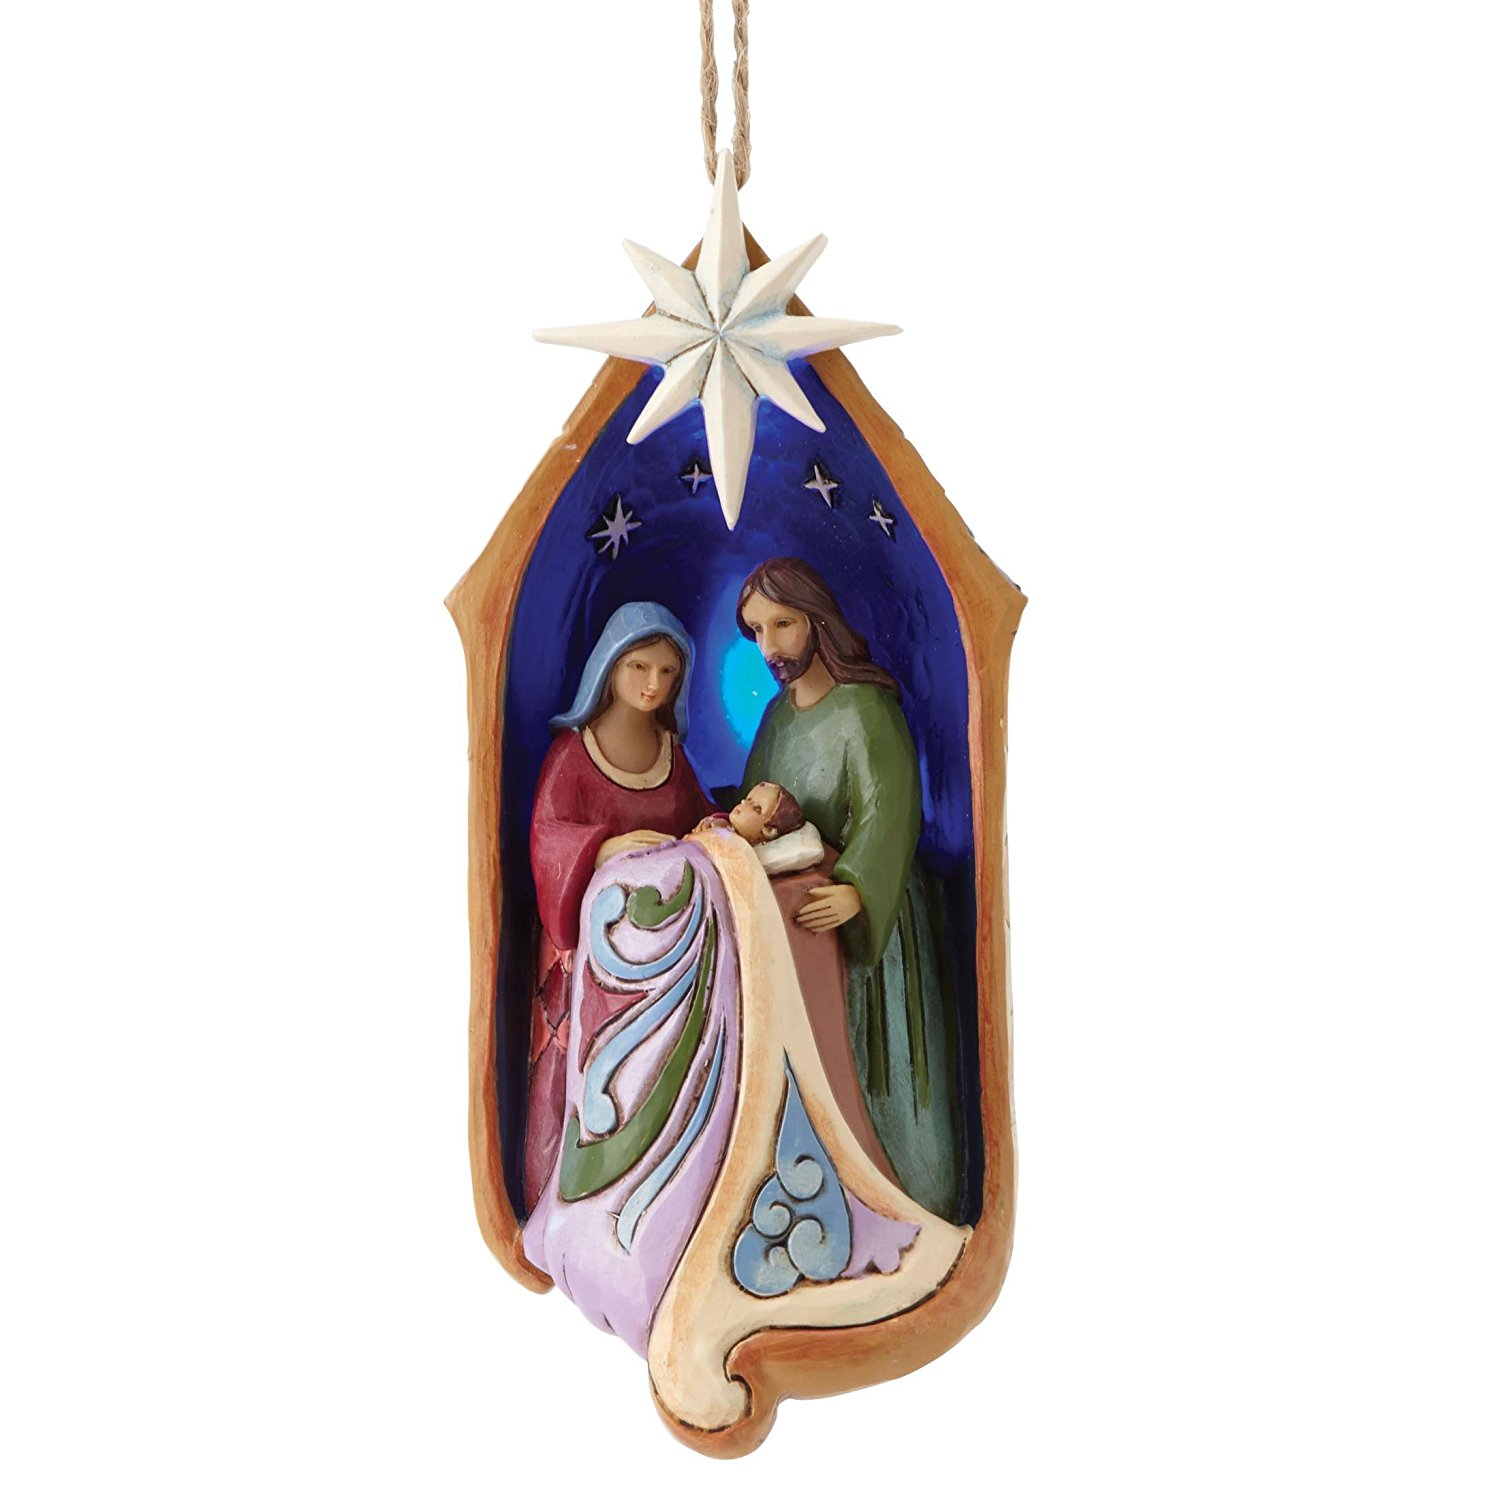 jim shore holy family in light up stable christmas ornament nativity in ornaments ldsbookstorecom enc 4053846